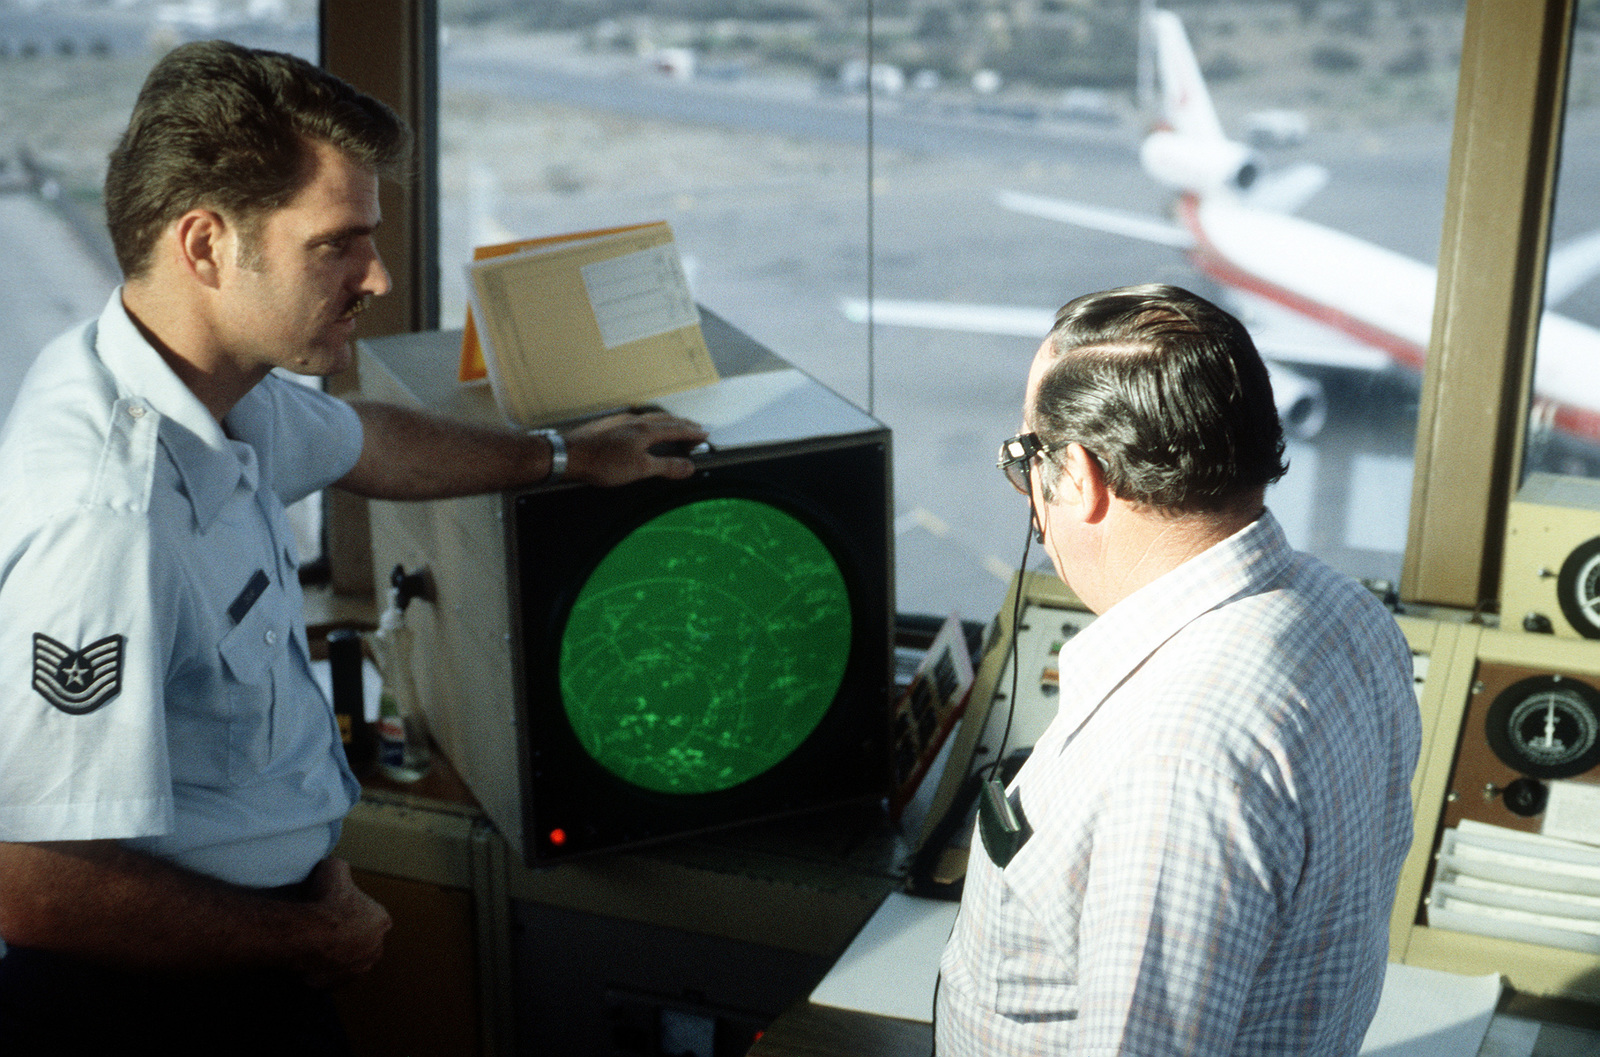 TSGT Fred Crum, an air traffic controller, monitors a radar scope along with his civilian supervisor, at the Oakland Airport Control Tower